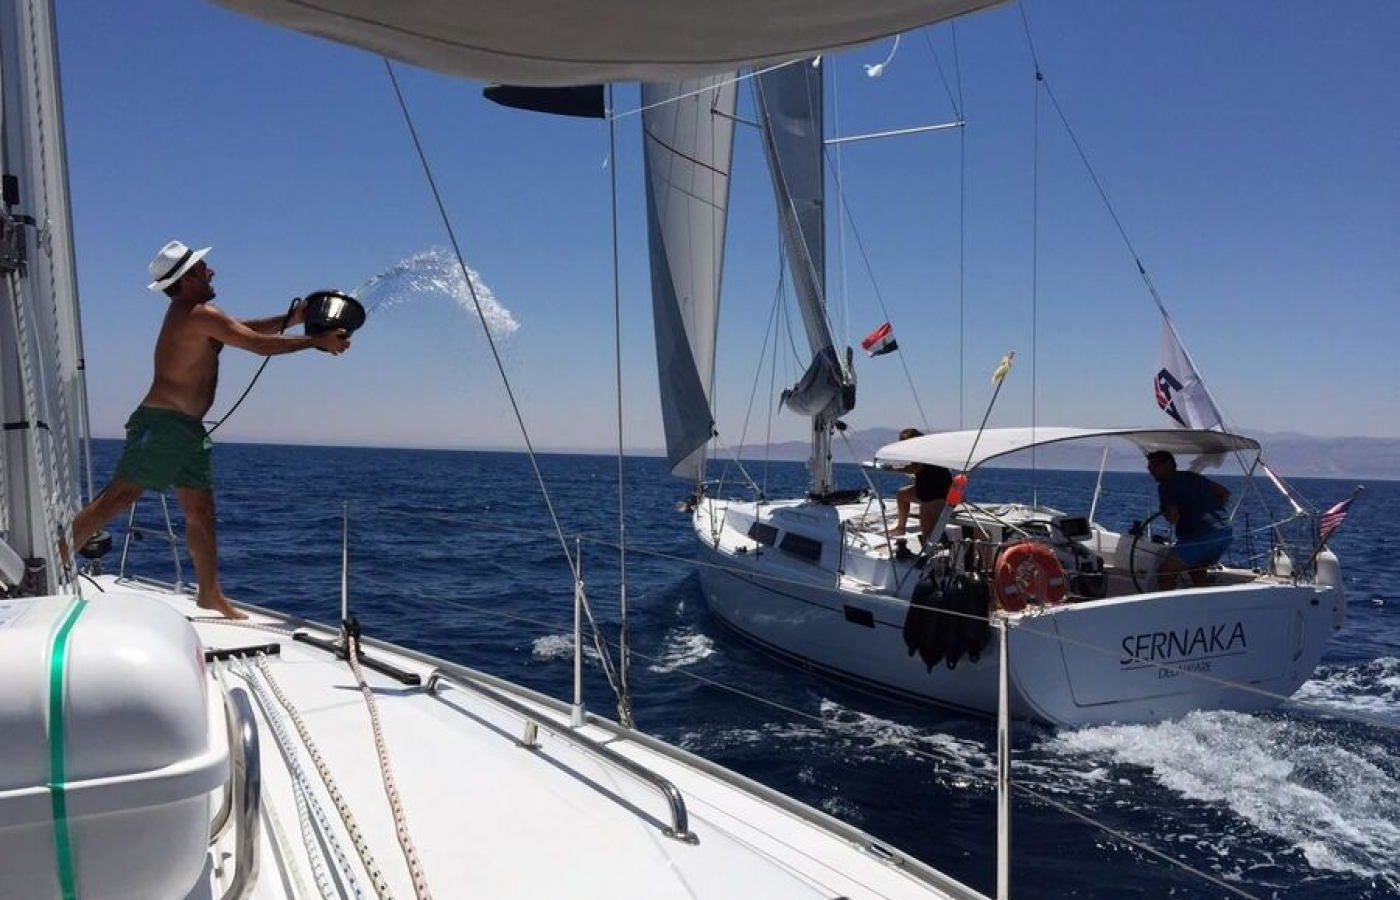 Hanse 385 holds a max of 6 passengers